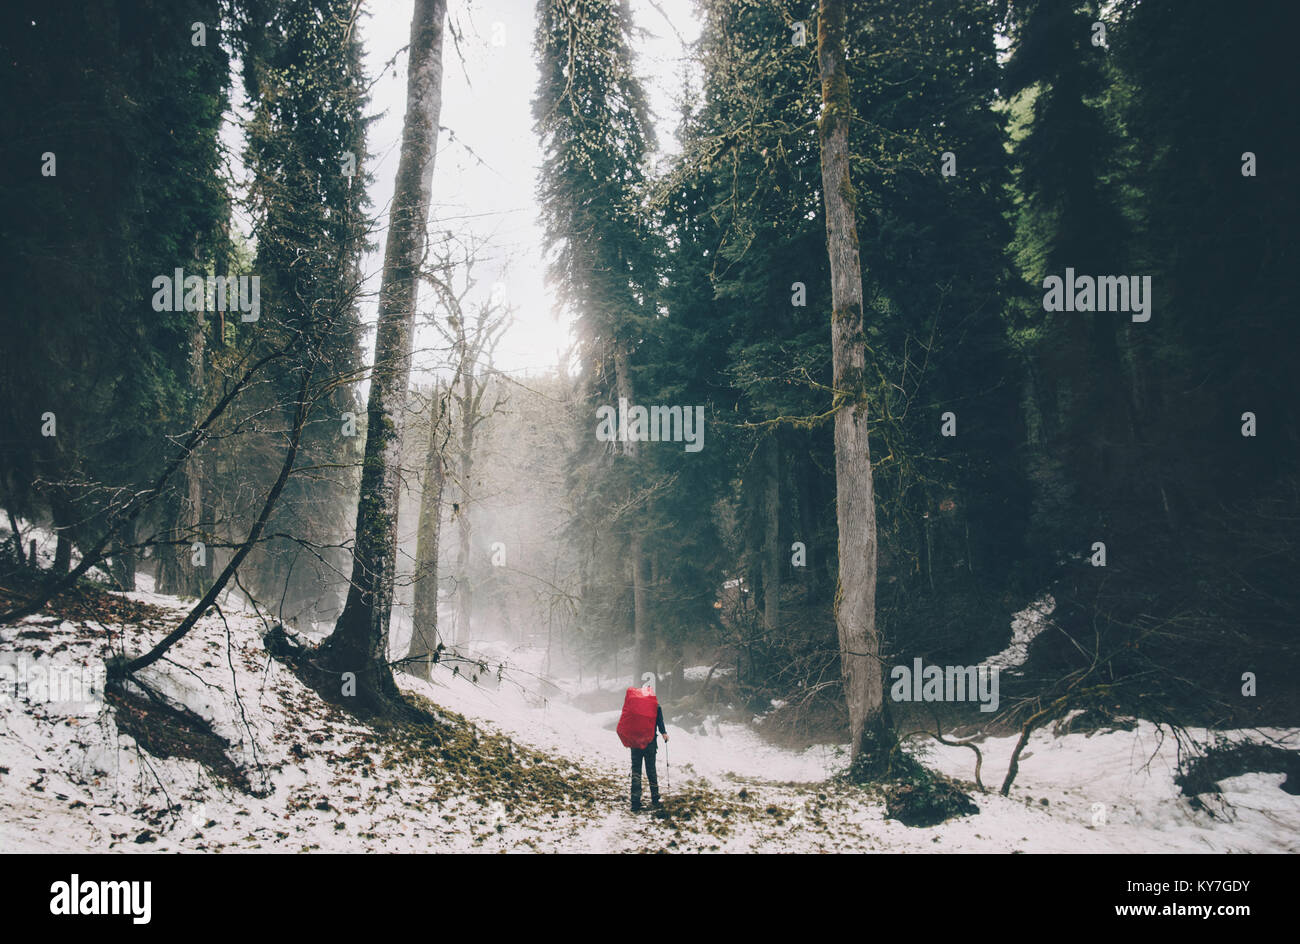 Traveler walking alone at foggy coniferous forest - Stock Image